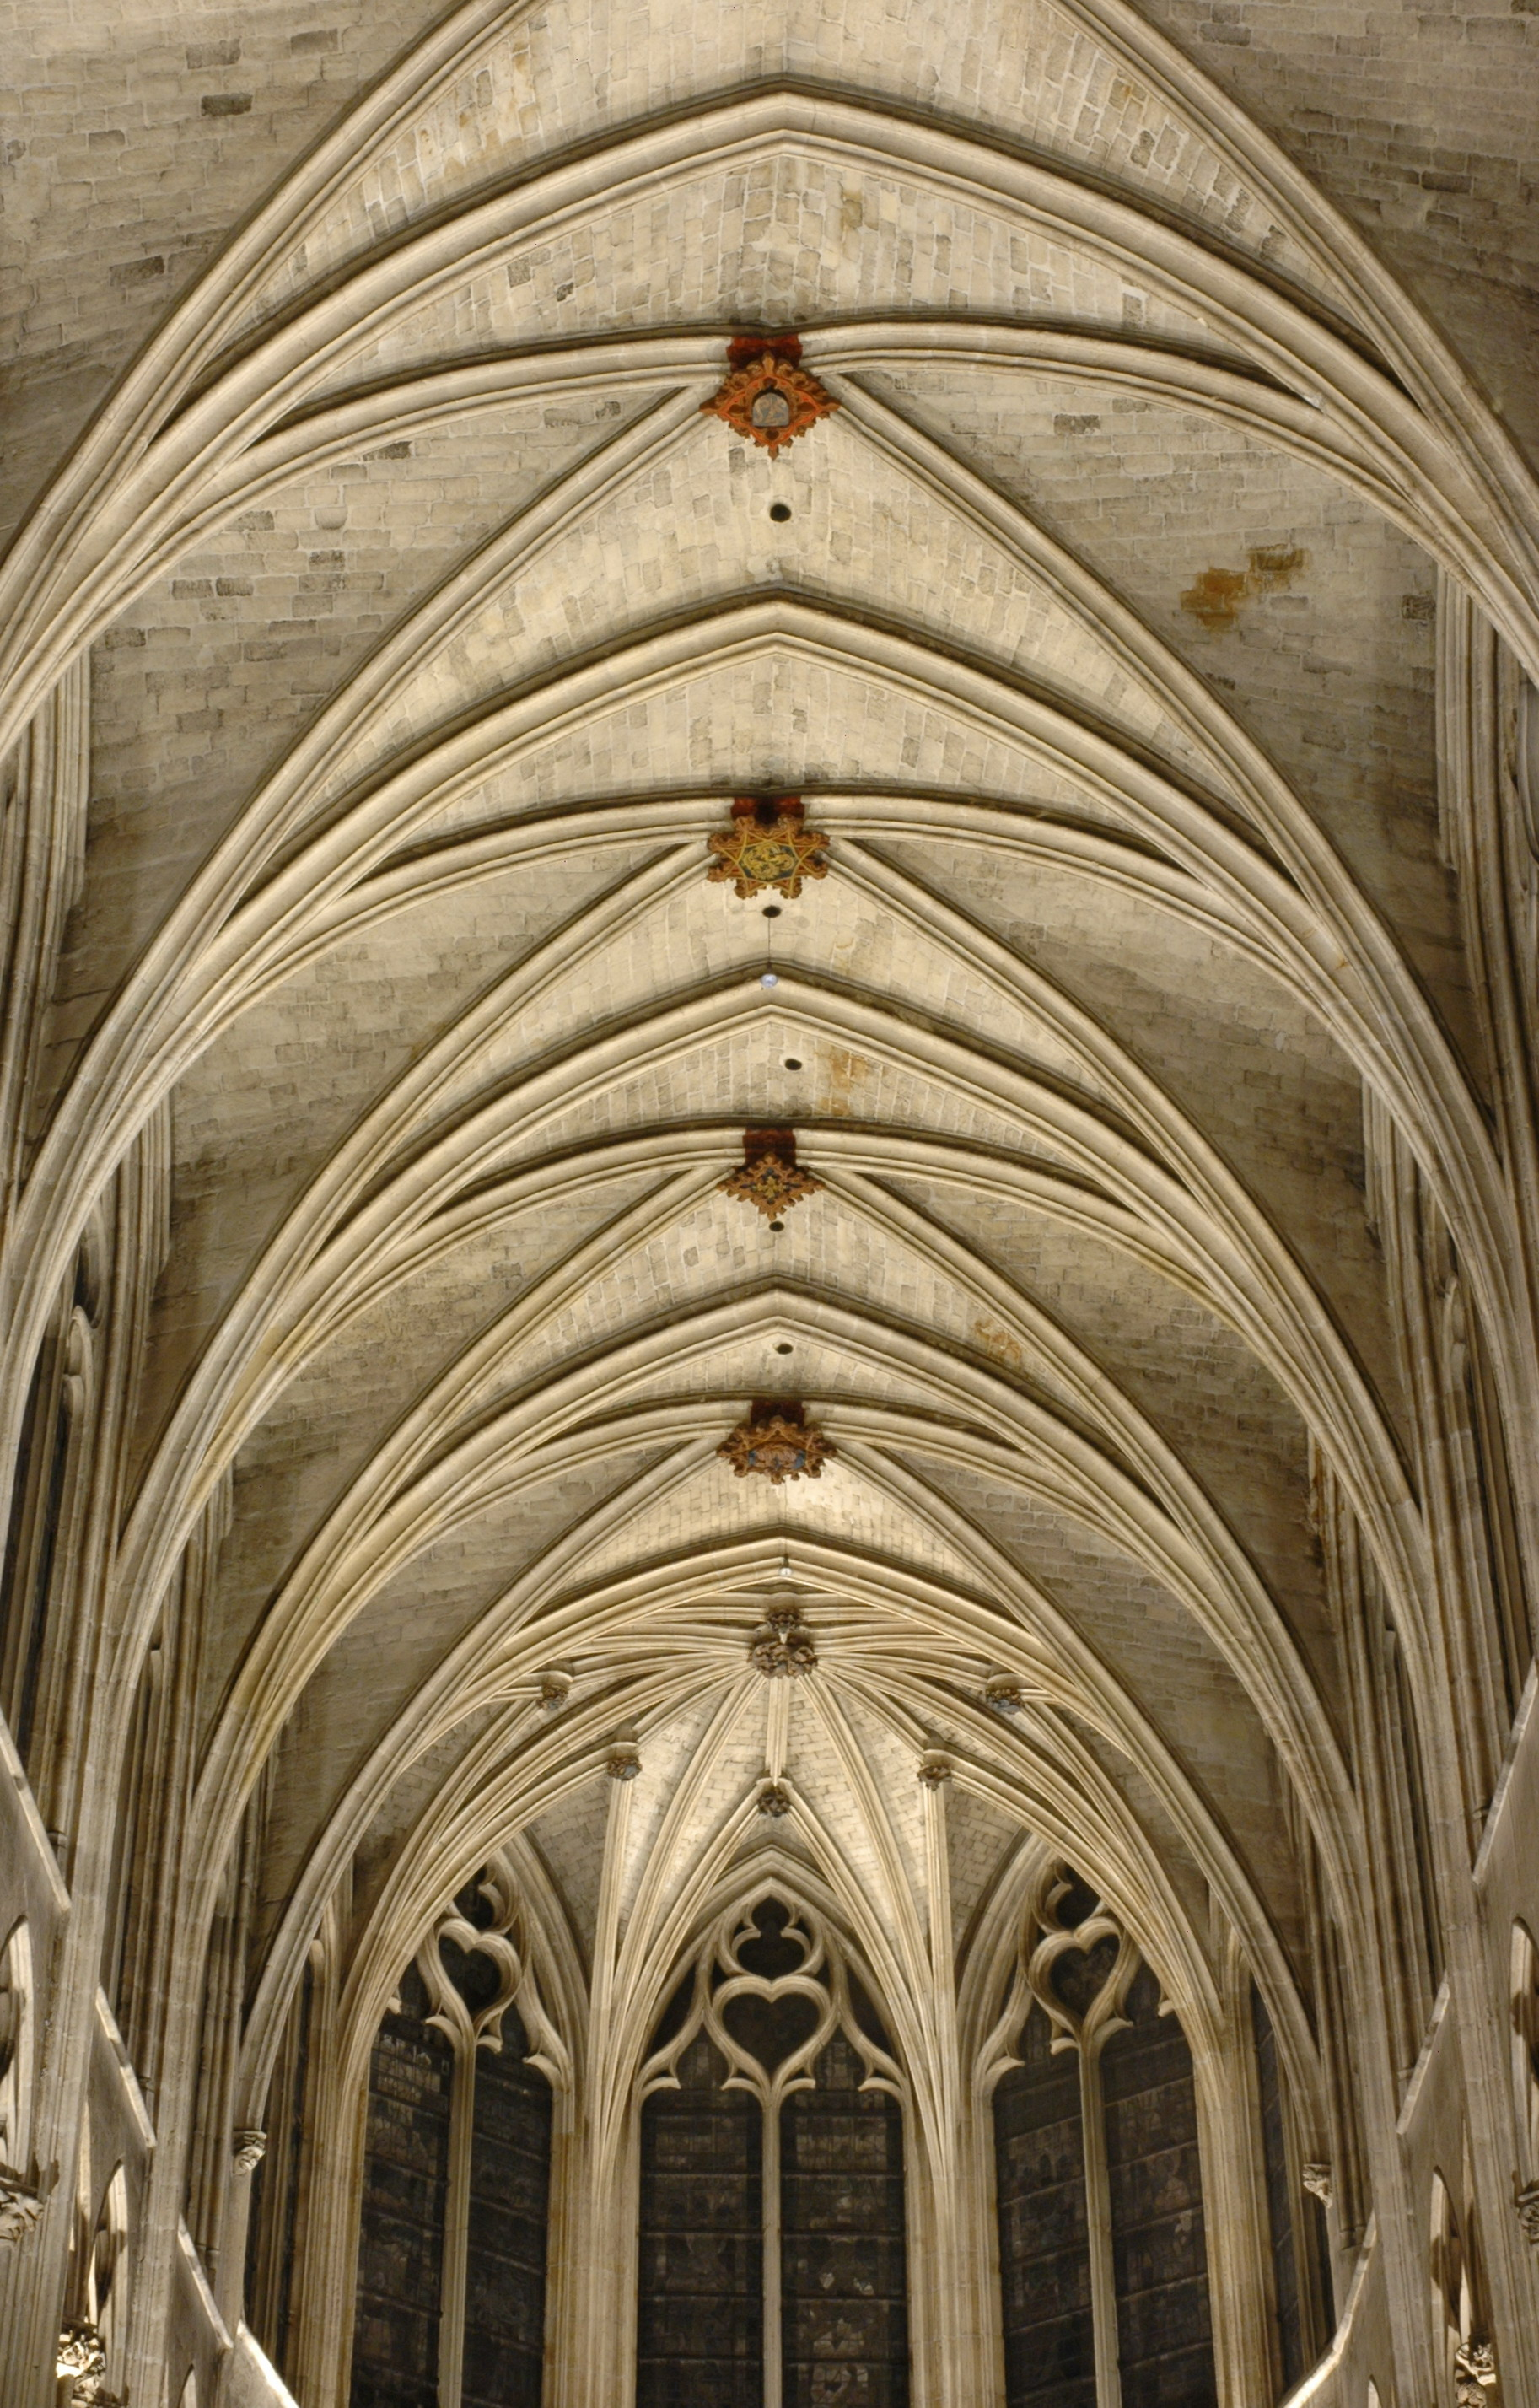 Gothic Rib Vault Ceiling Of The Saint Severin Church In Paris